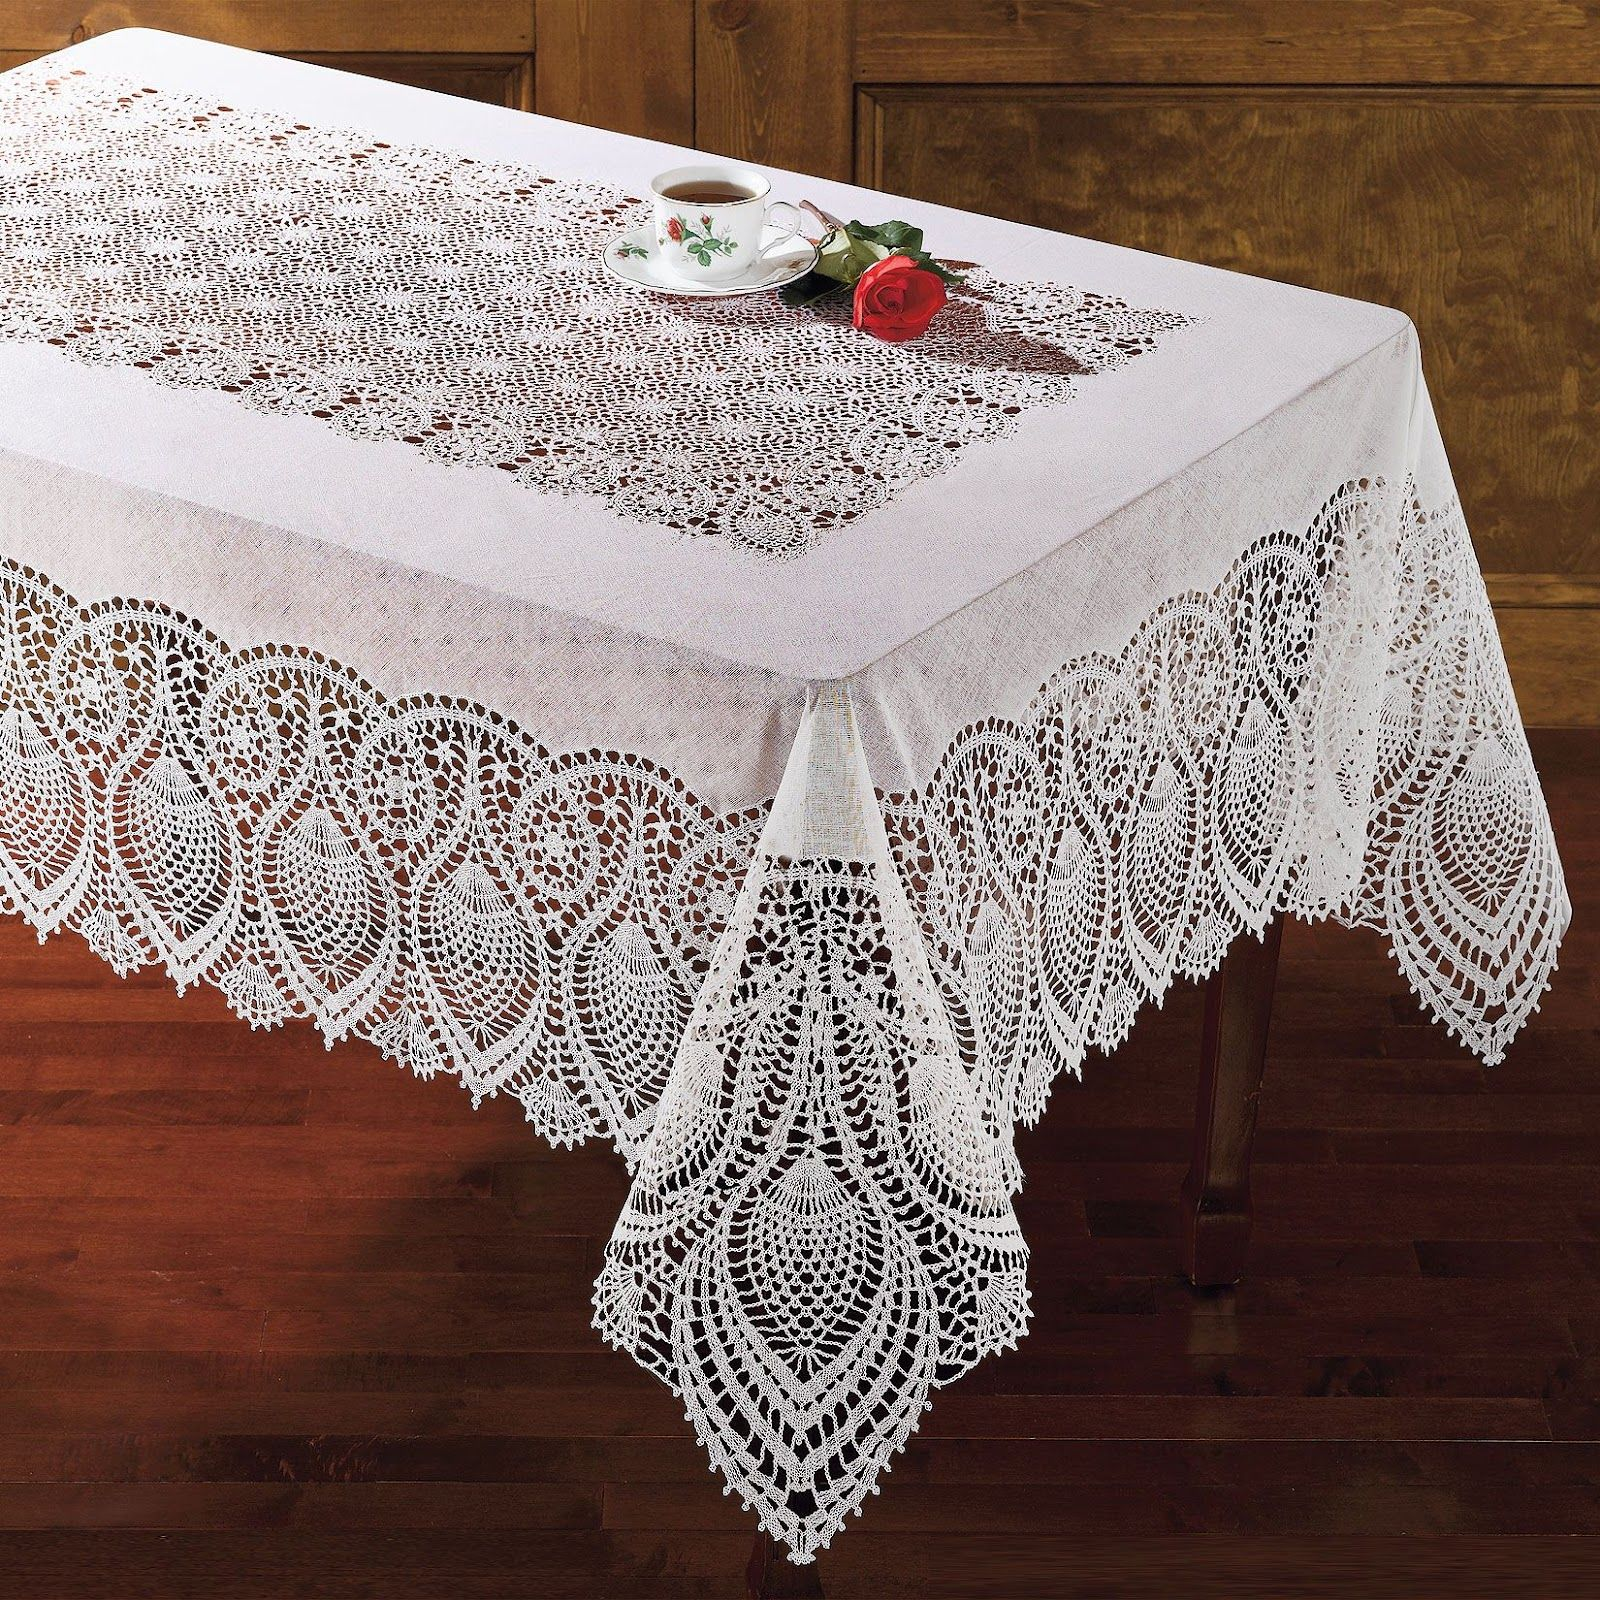 Amazing Lace Tablecloth   Google Search